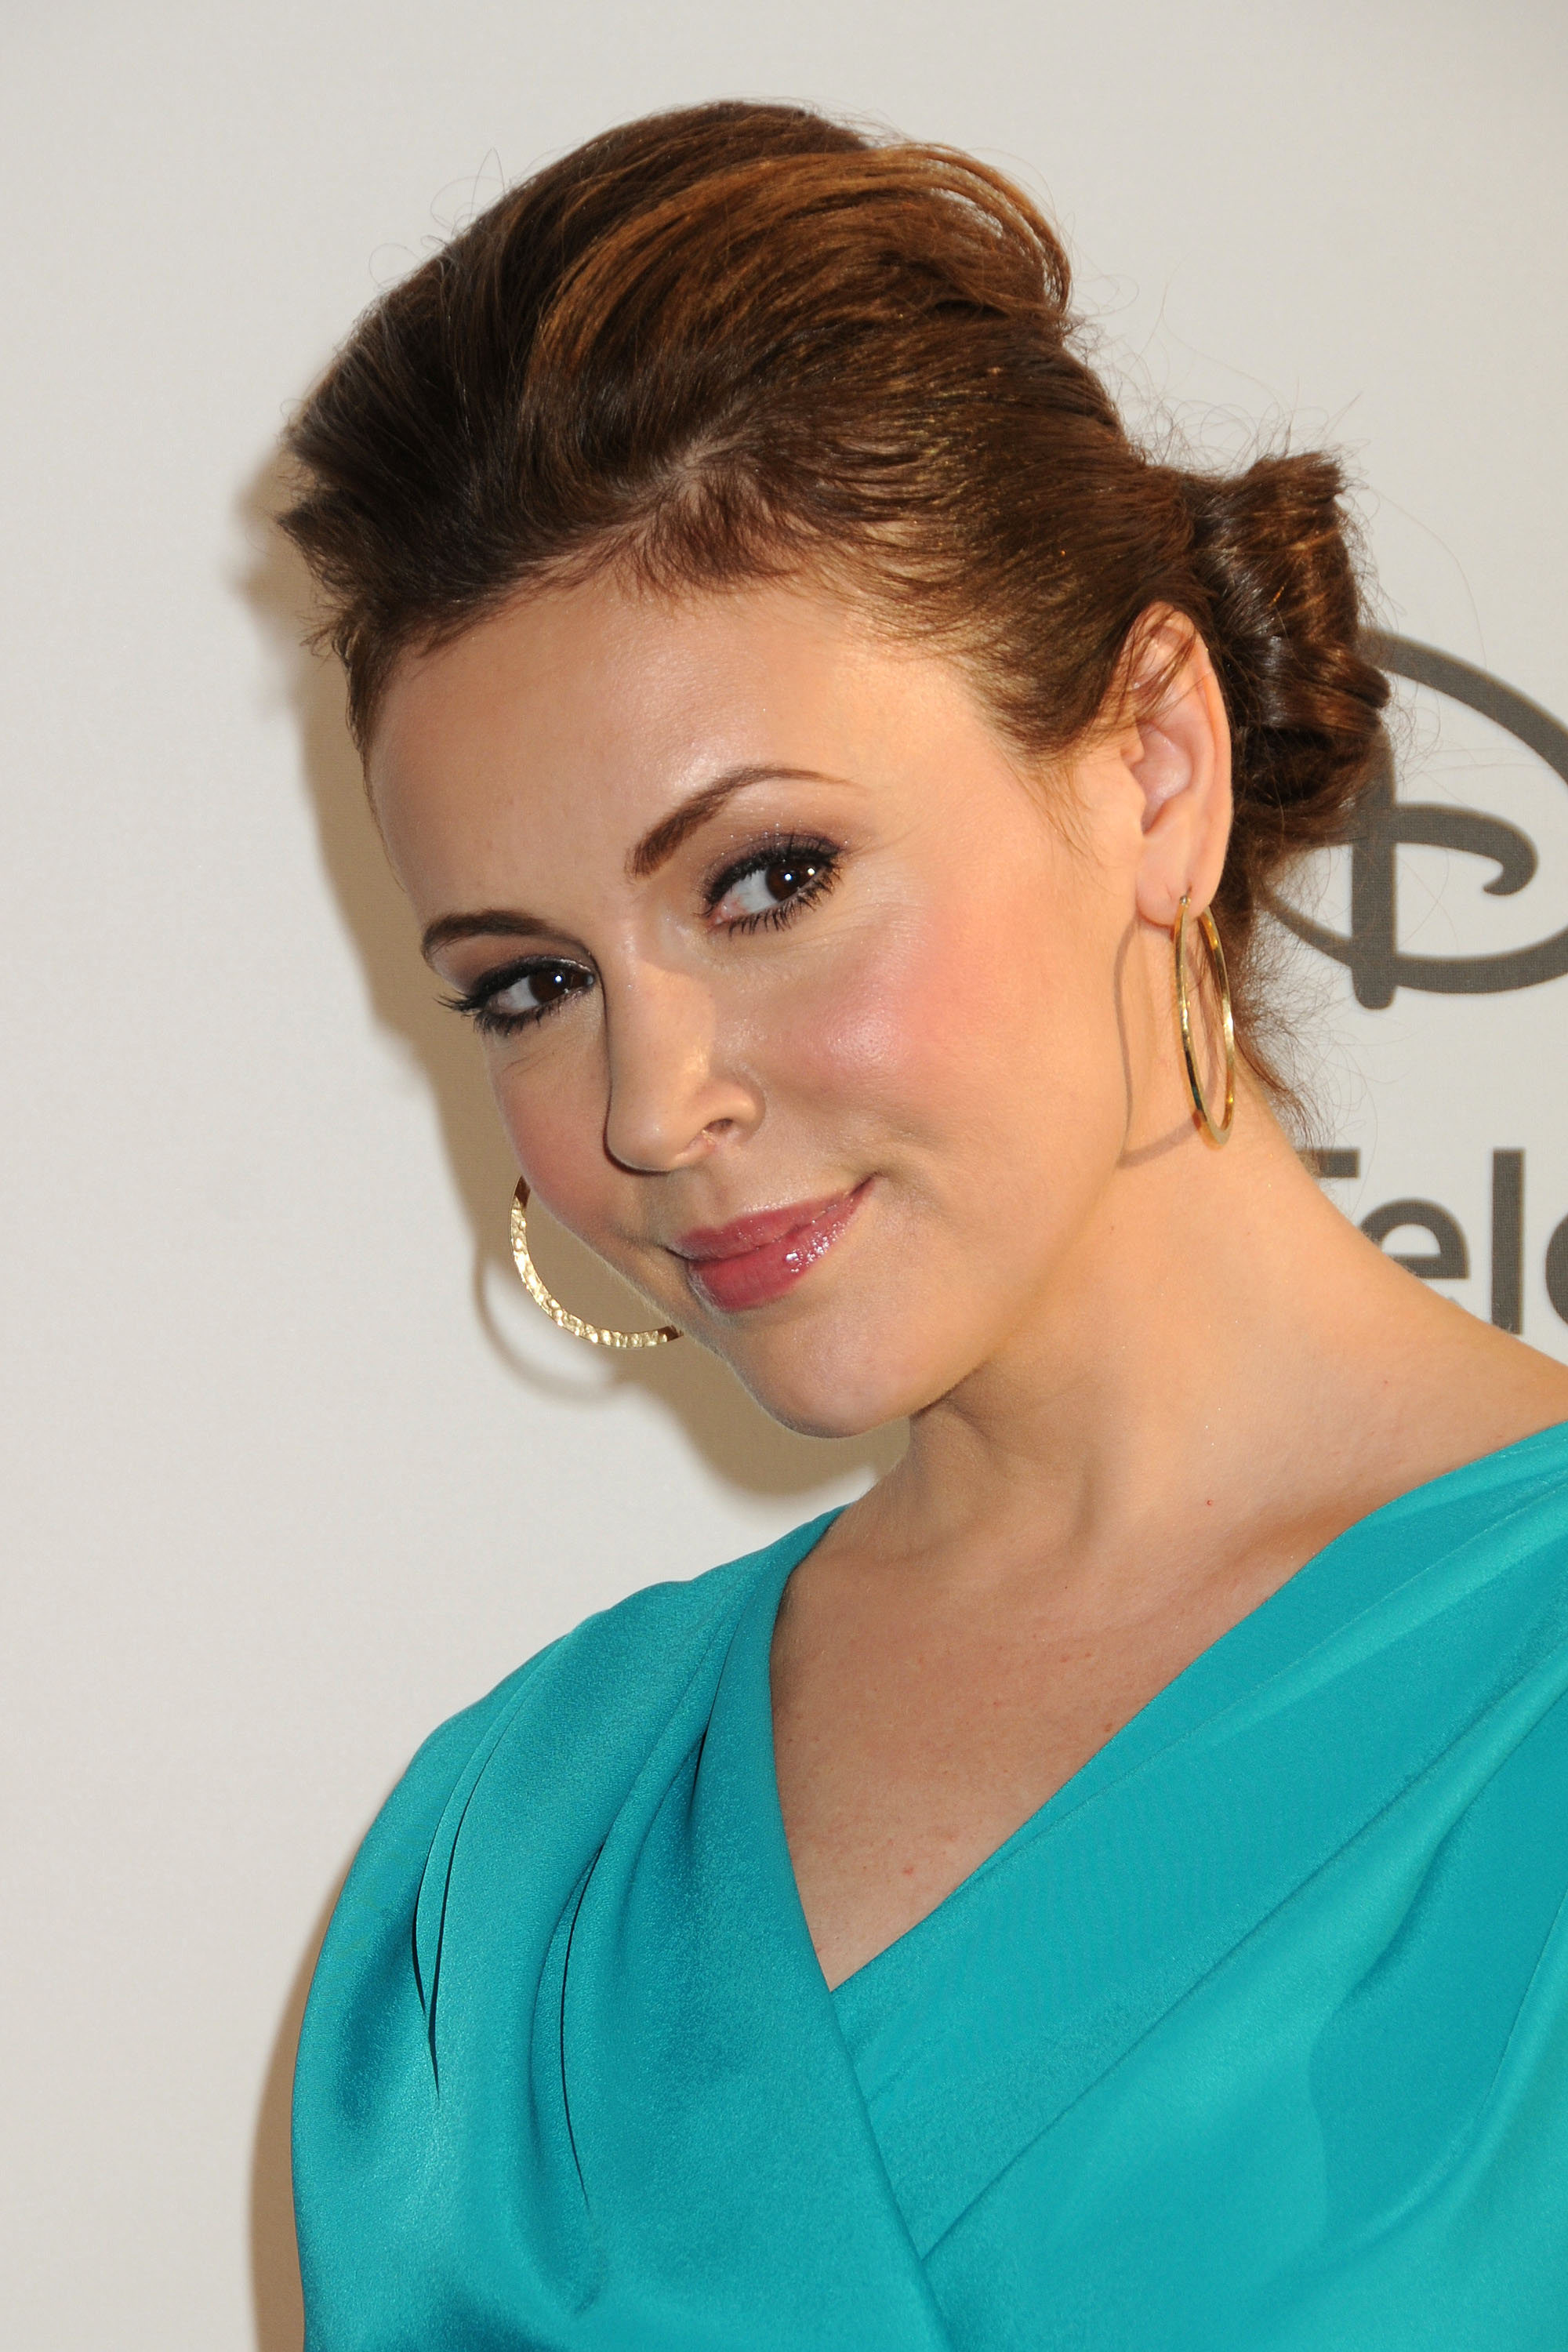 665974223_Alyssa_Milano_Disney_Media_Networks_International_Upfronts2_122_76lo.jpg